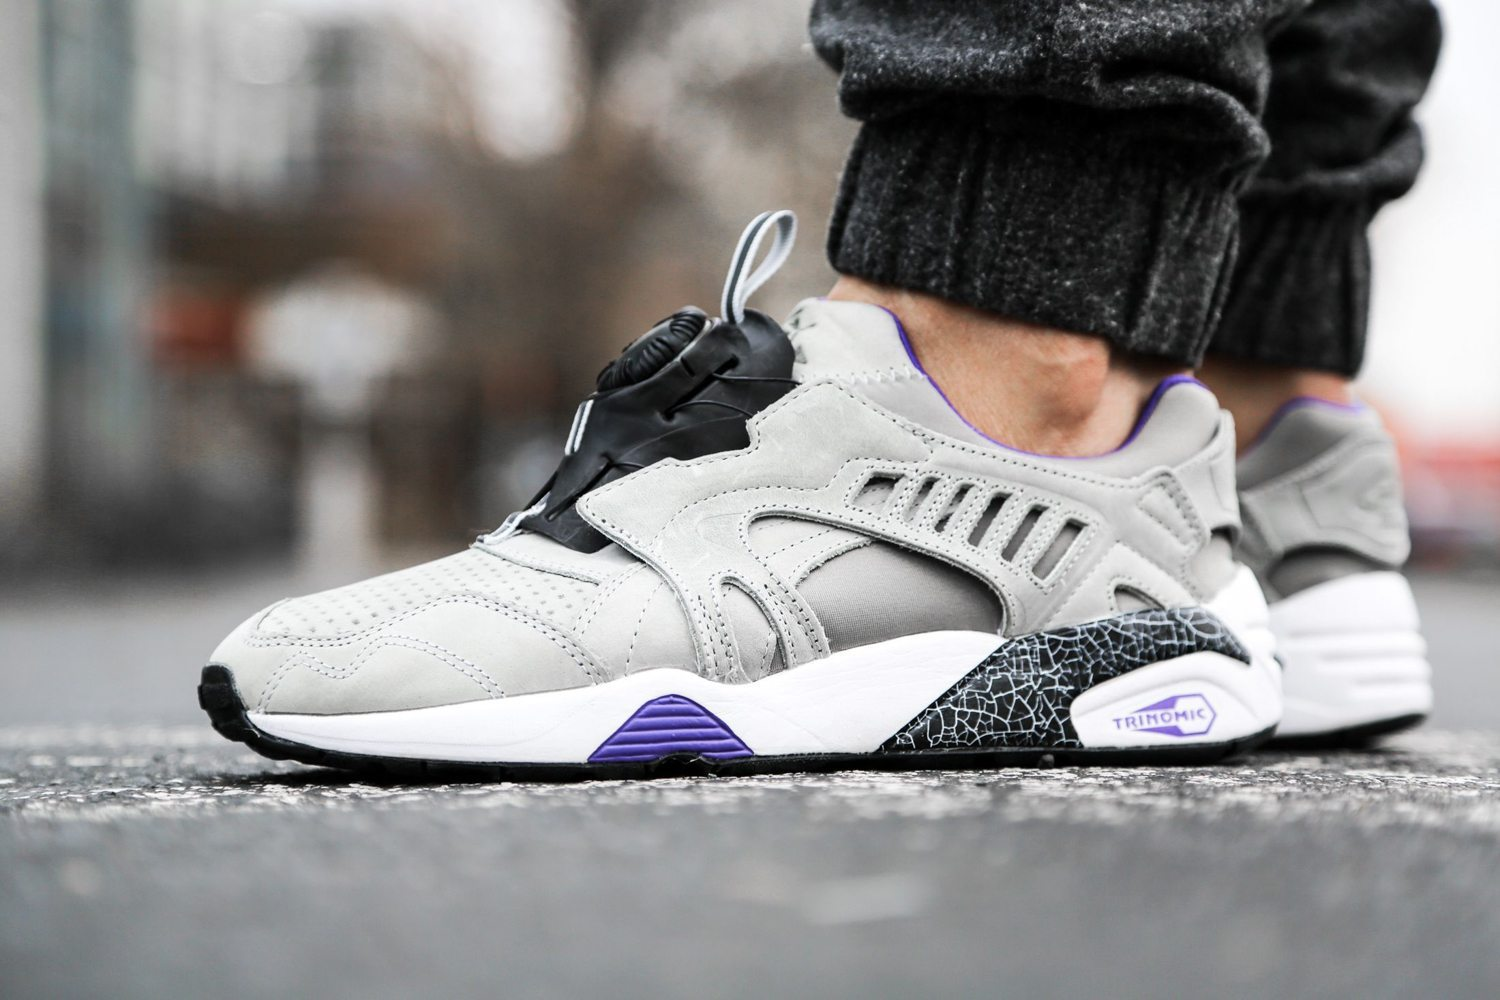 PUMA Disc Crackle Pack Part IV 17